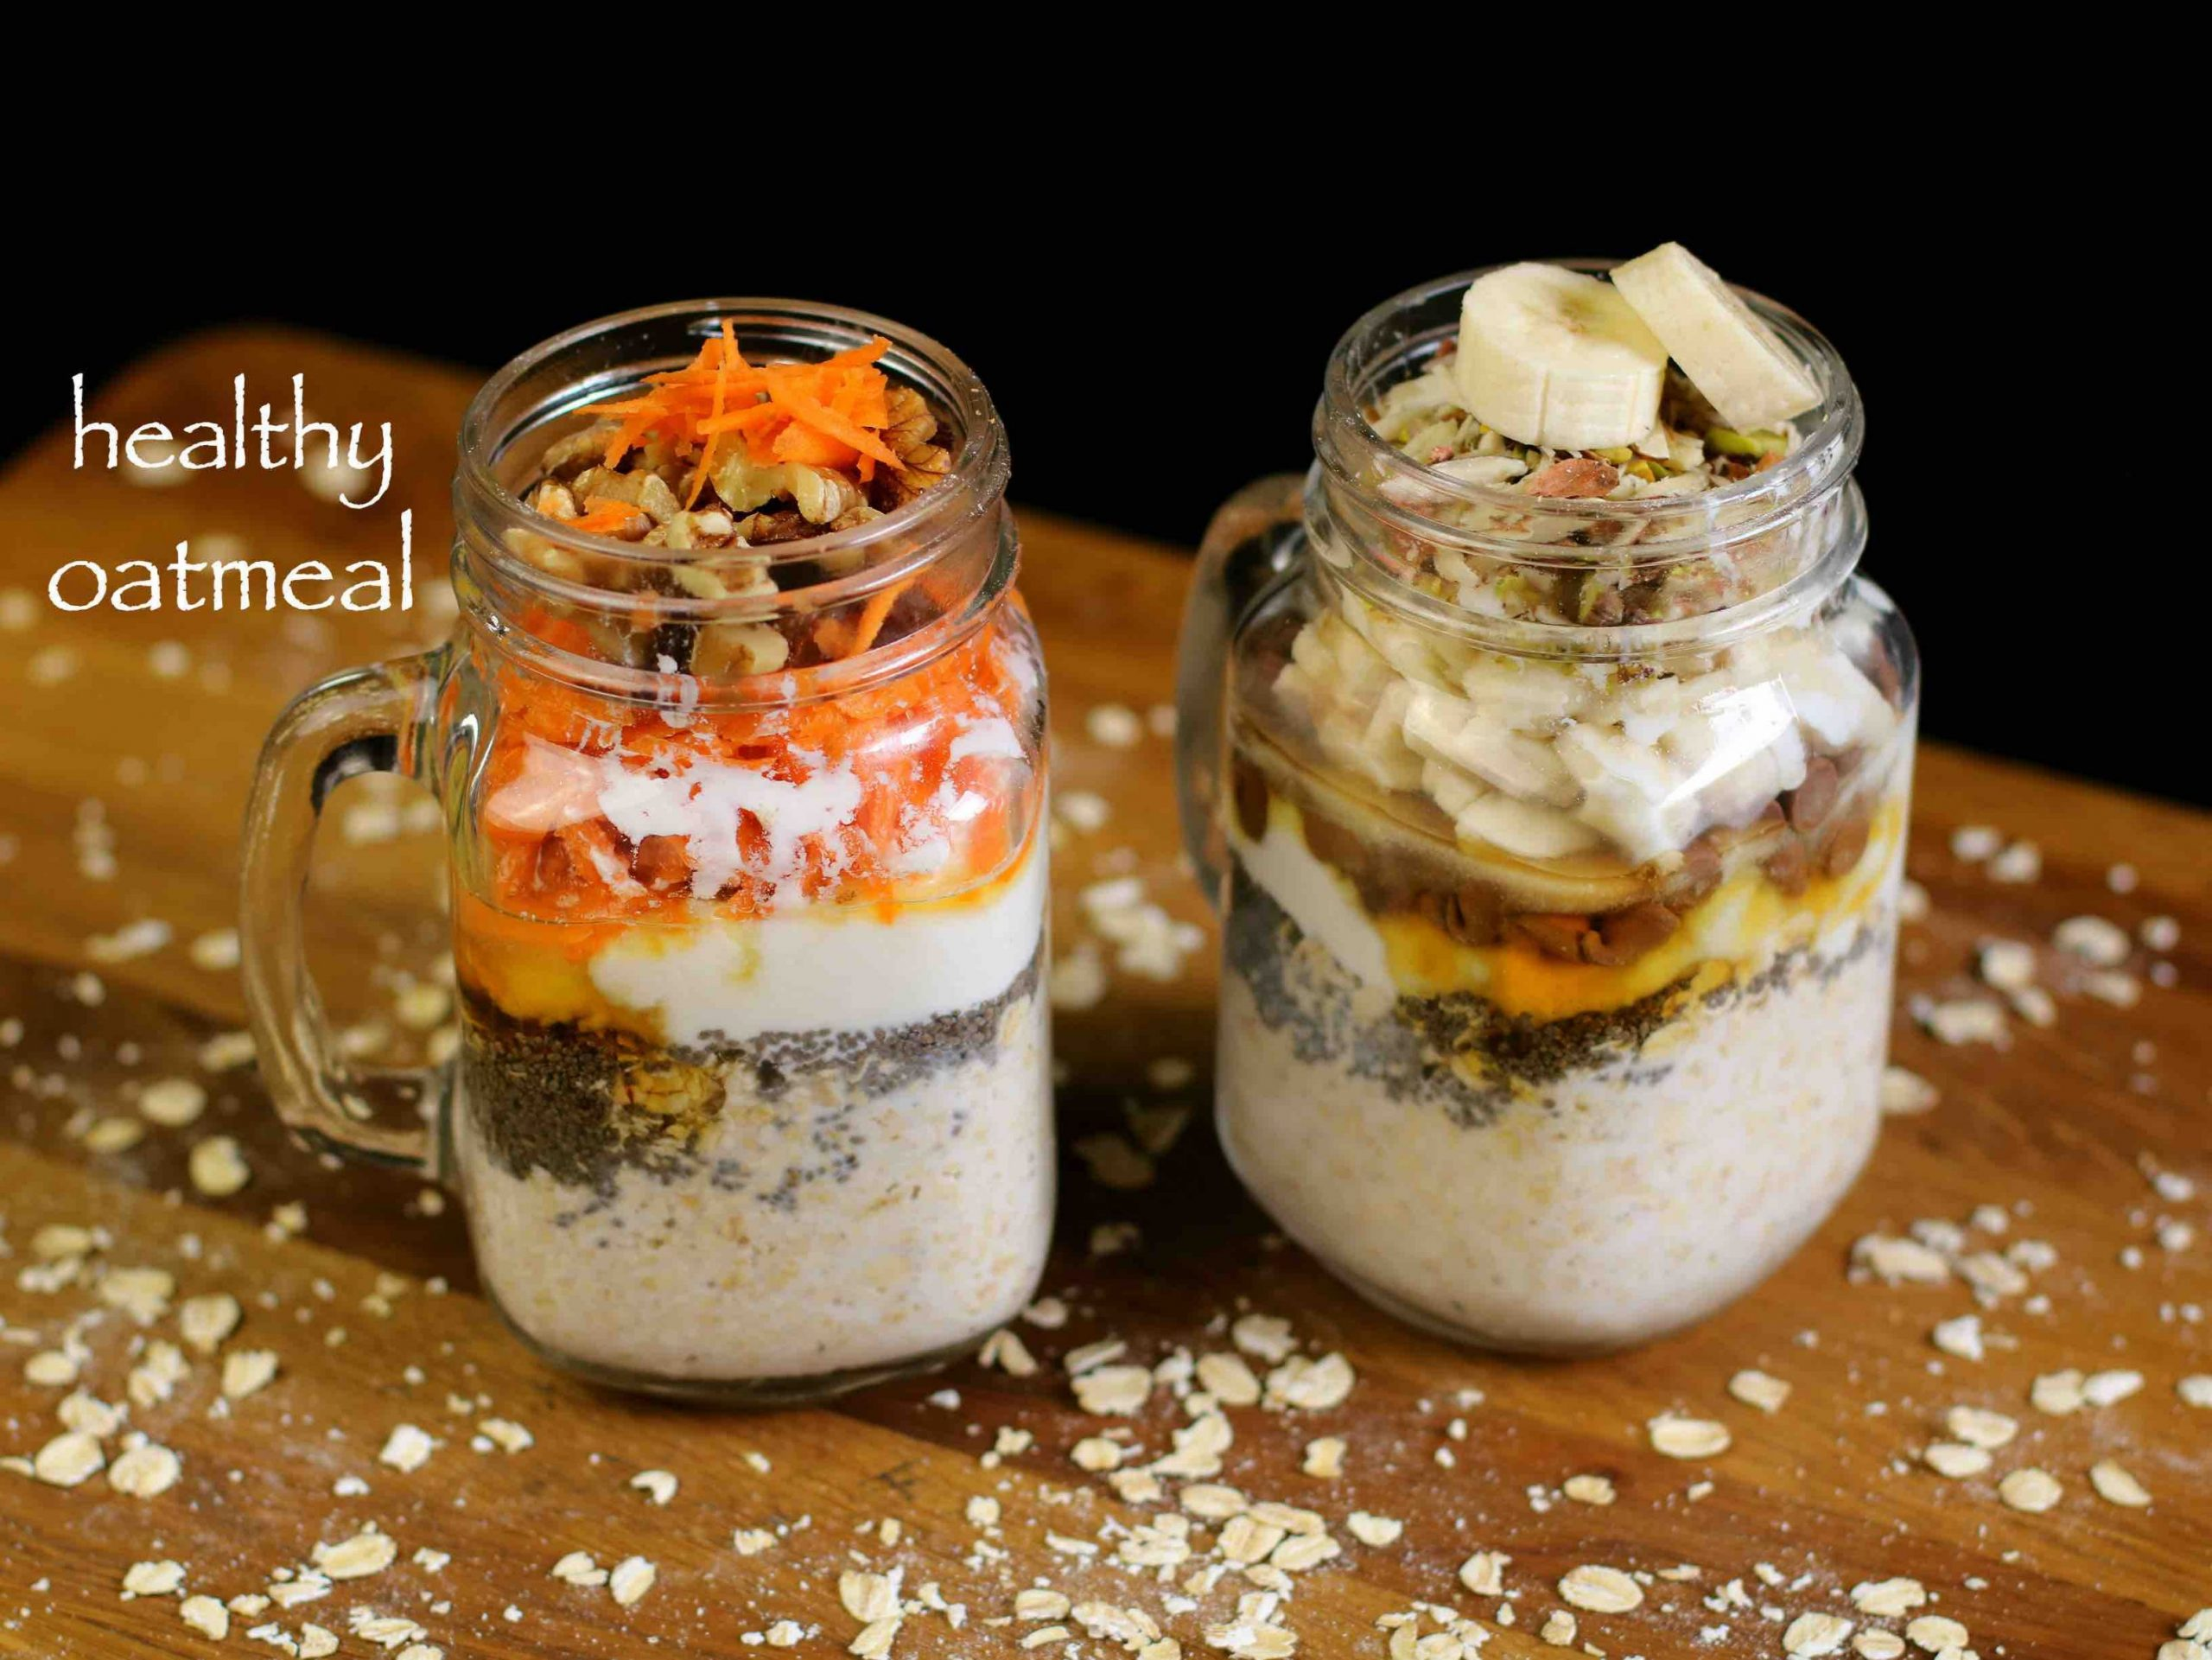 oatmeal recipe | overnight oats recipe | oats recipes for weight loss